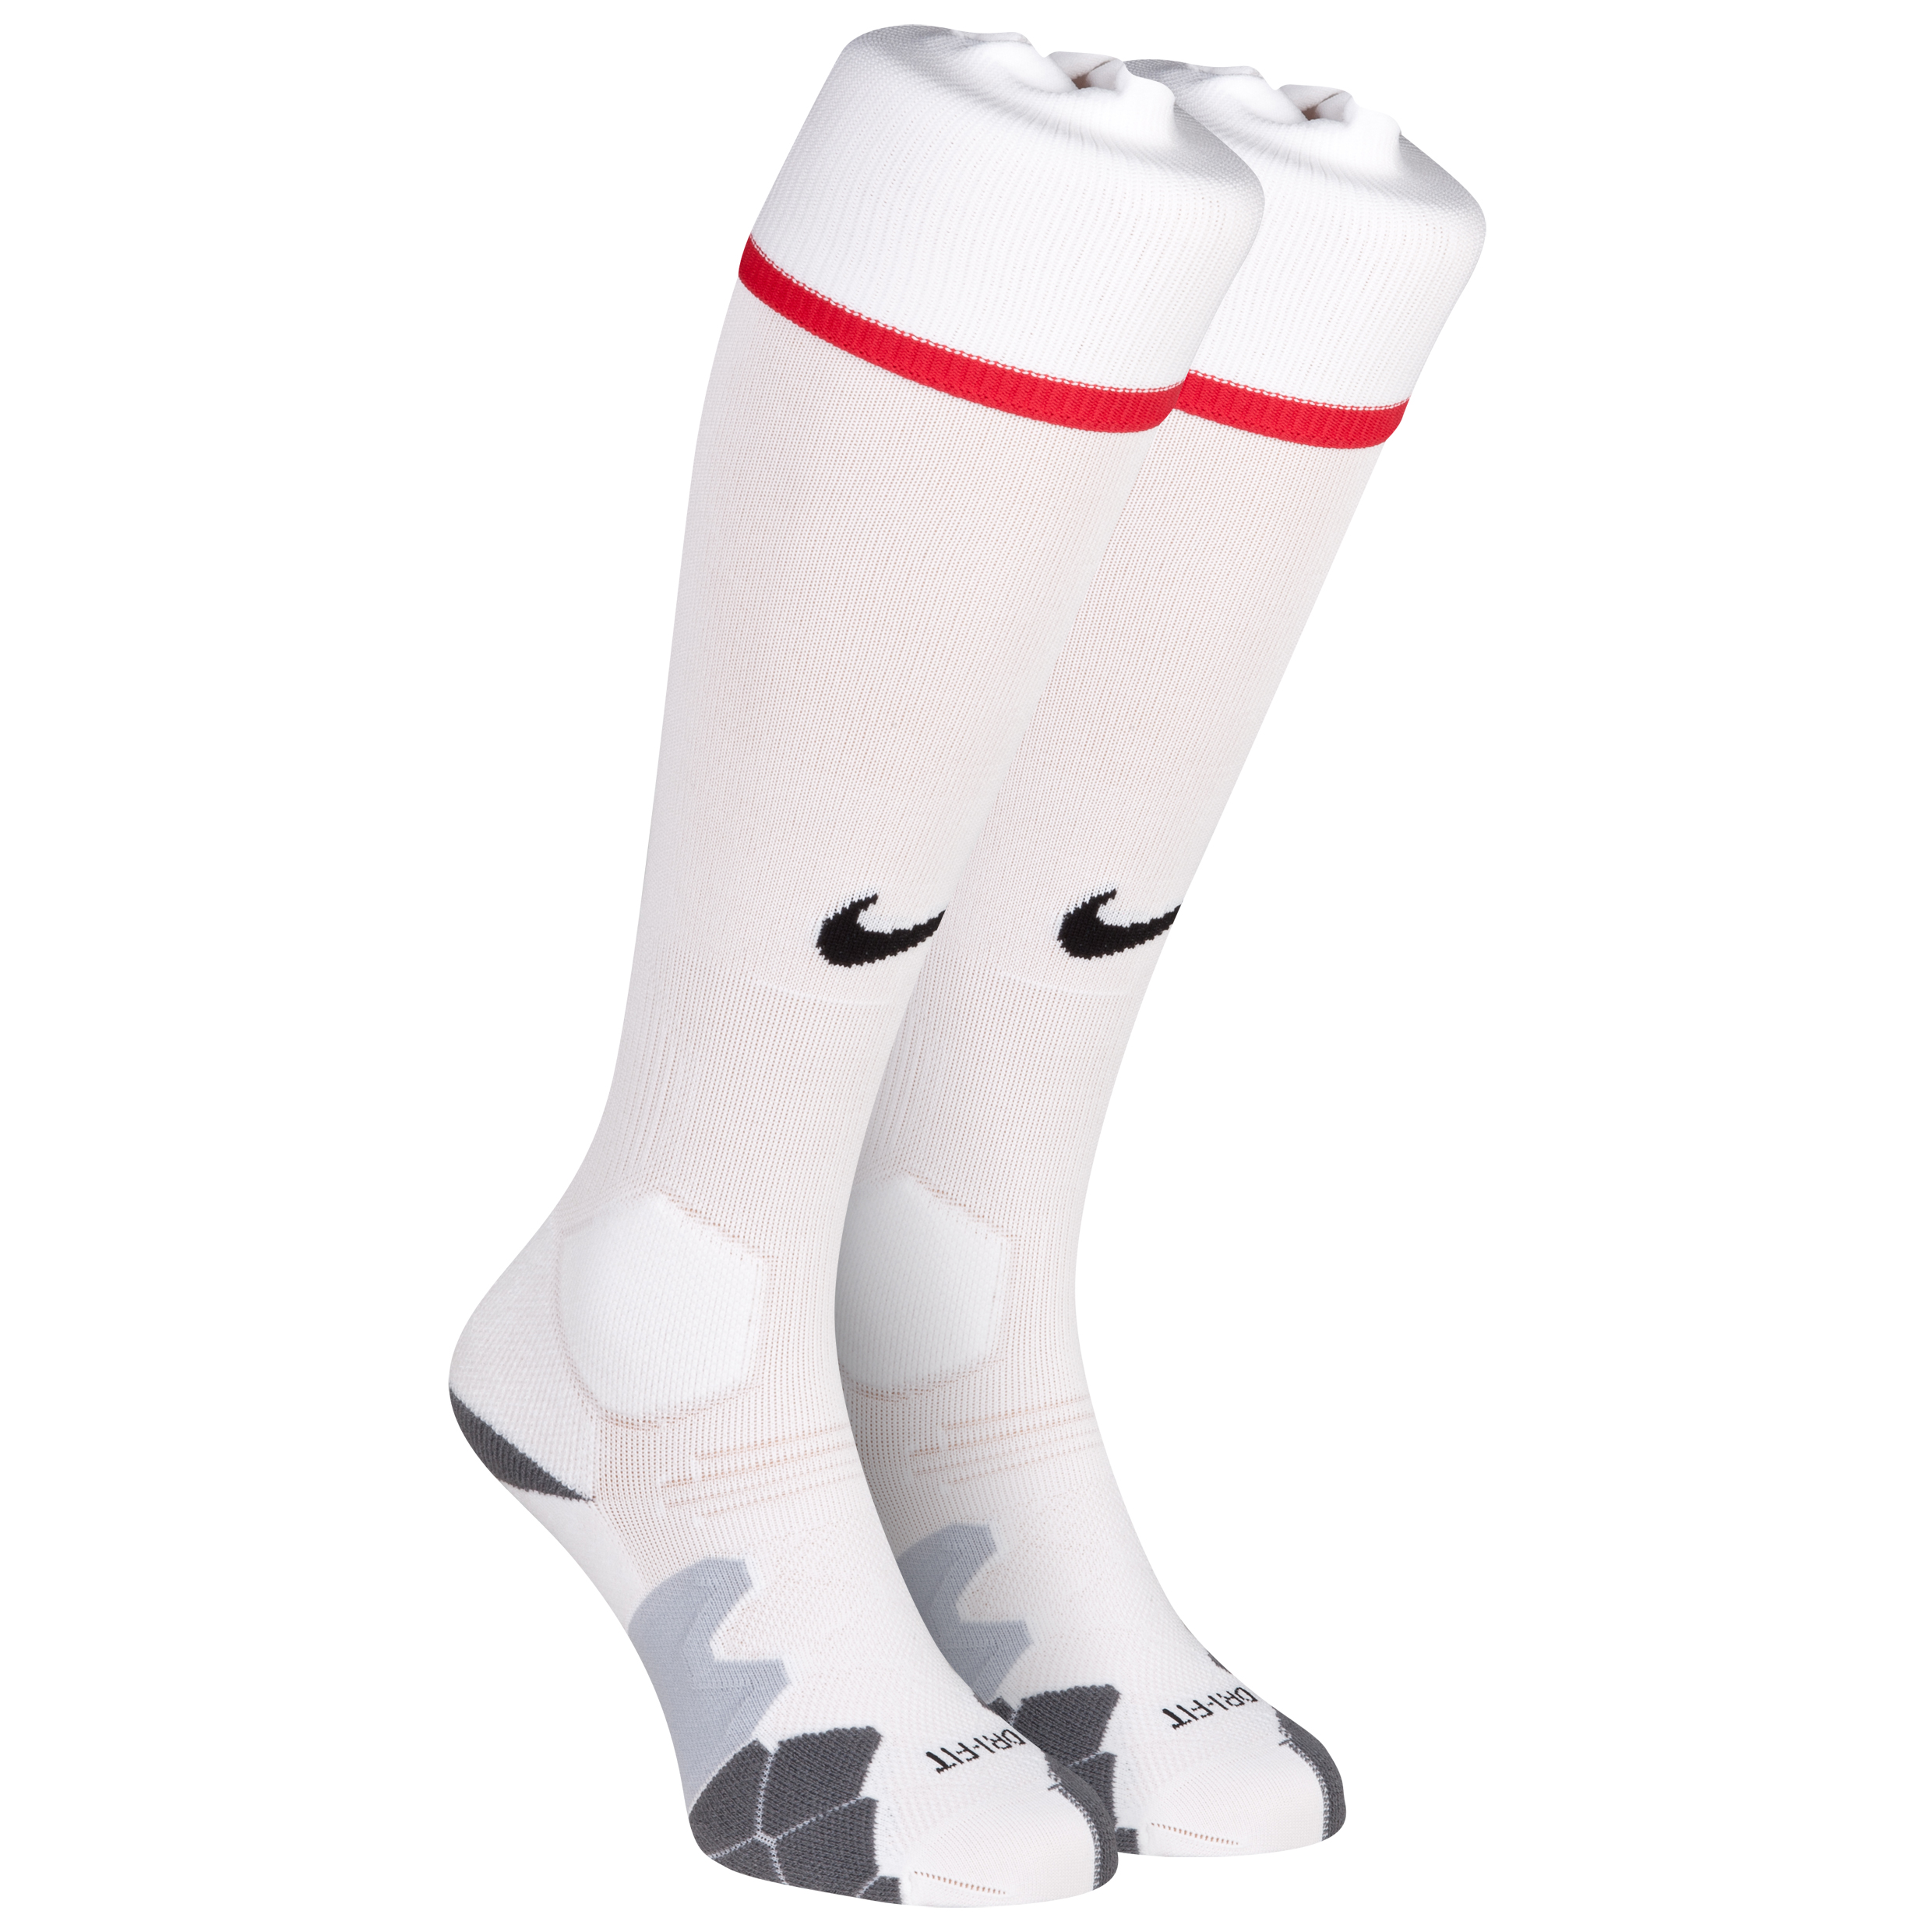 Manchester United Away Sock 2012/13